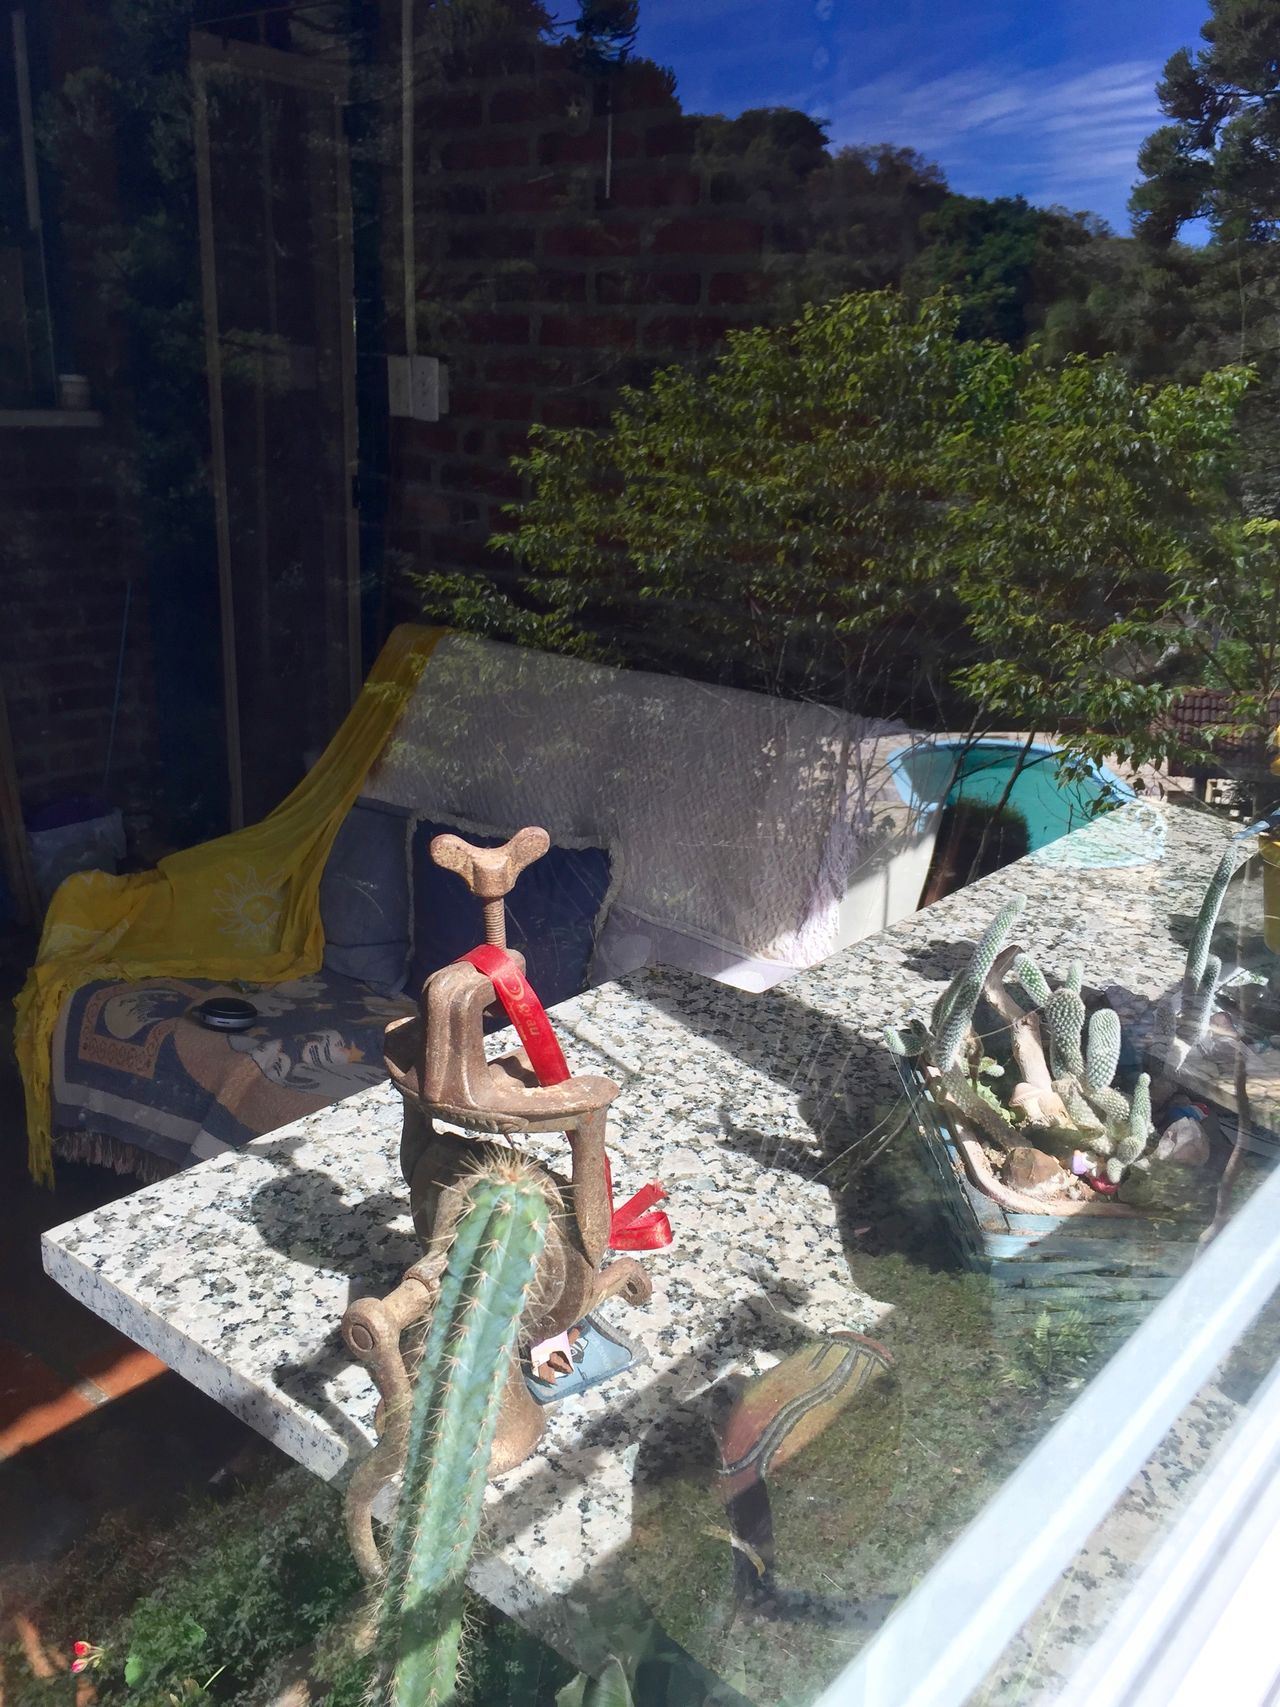 Reflexions from in and outside through the glasses of a widow. Abstract Balcony View Bricks Wall Day Granite Counte Indoors  Mix Image Mixed Nature Out And Indoors Outdoors Plant Reflexions Swimmingpool Tree Wall